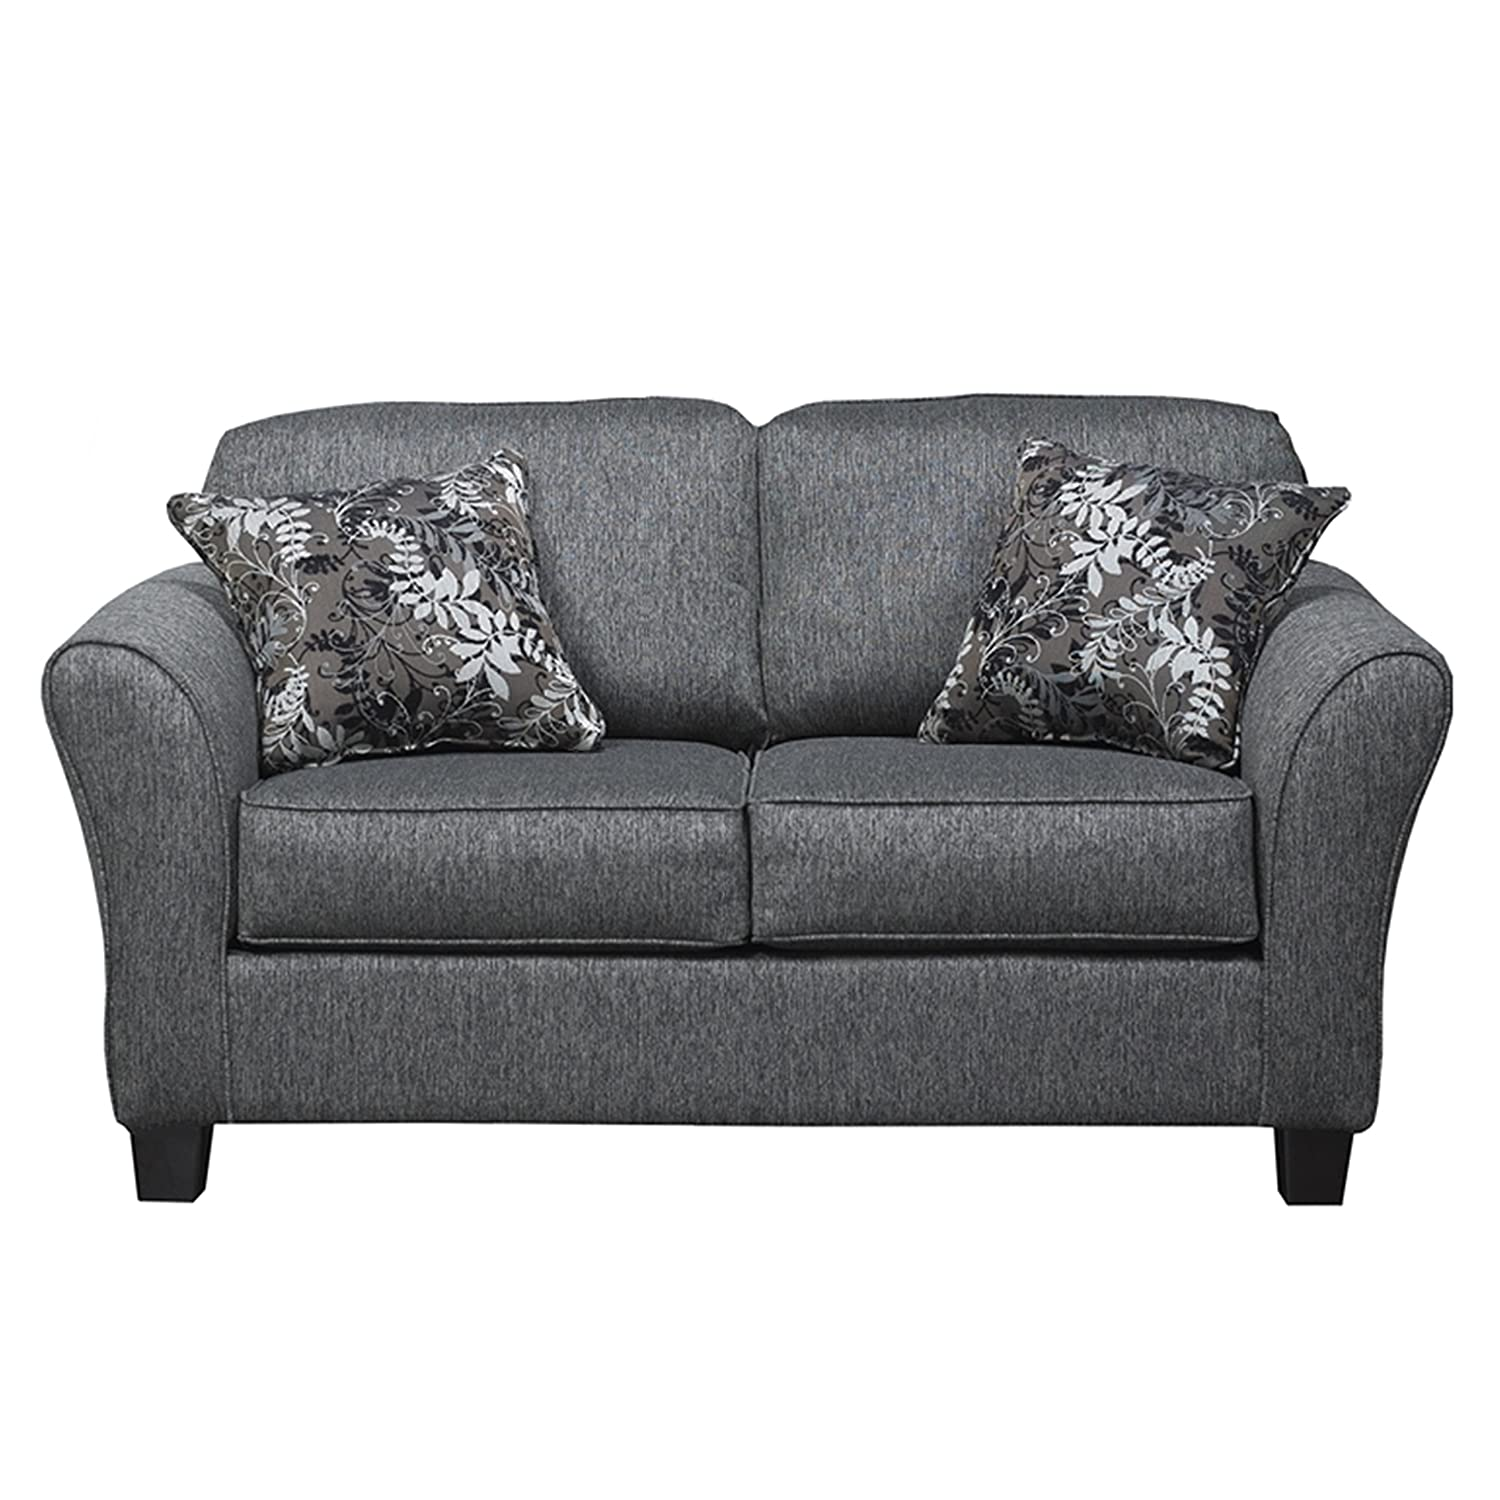 Elmira Pewter Gray Fabric Upholstery Wood Frame Loveseat with Pillows